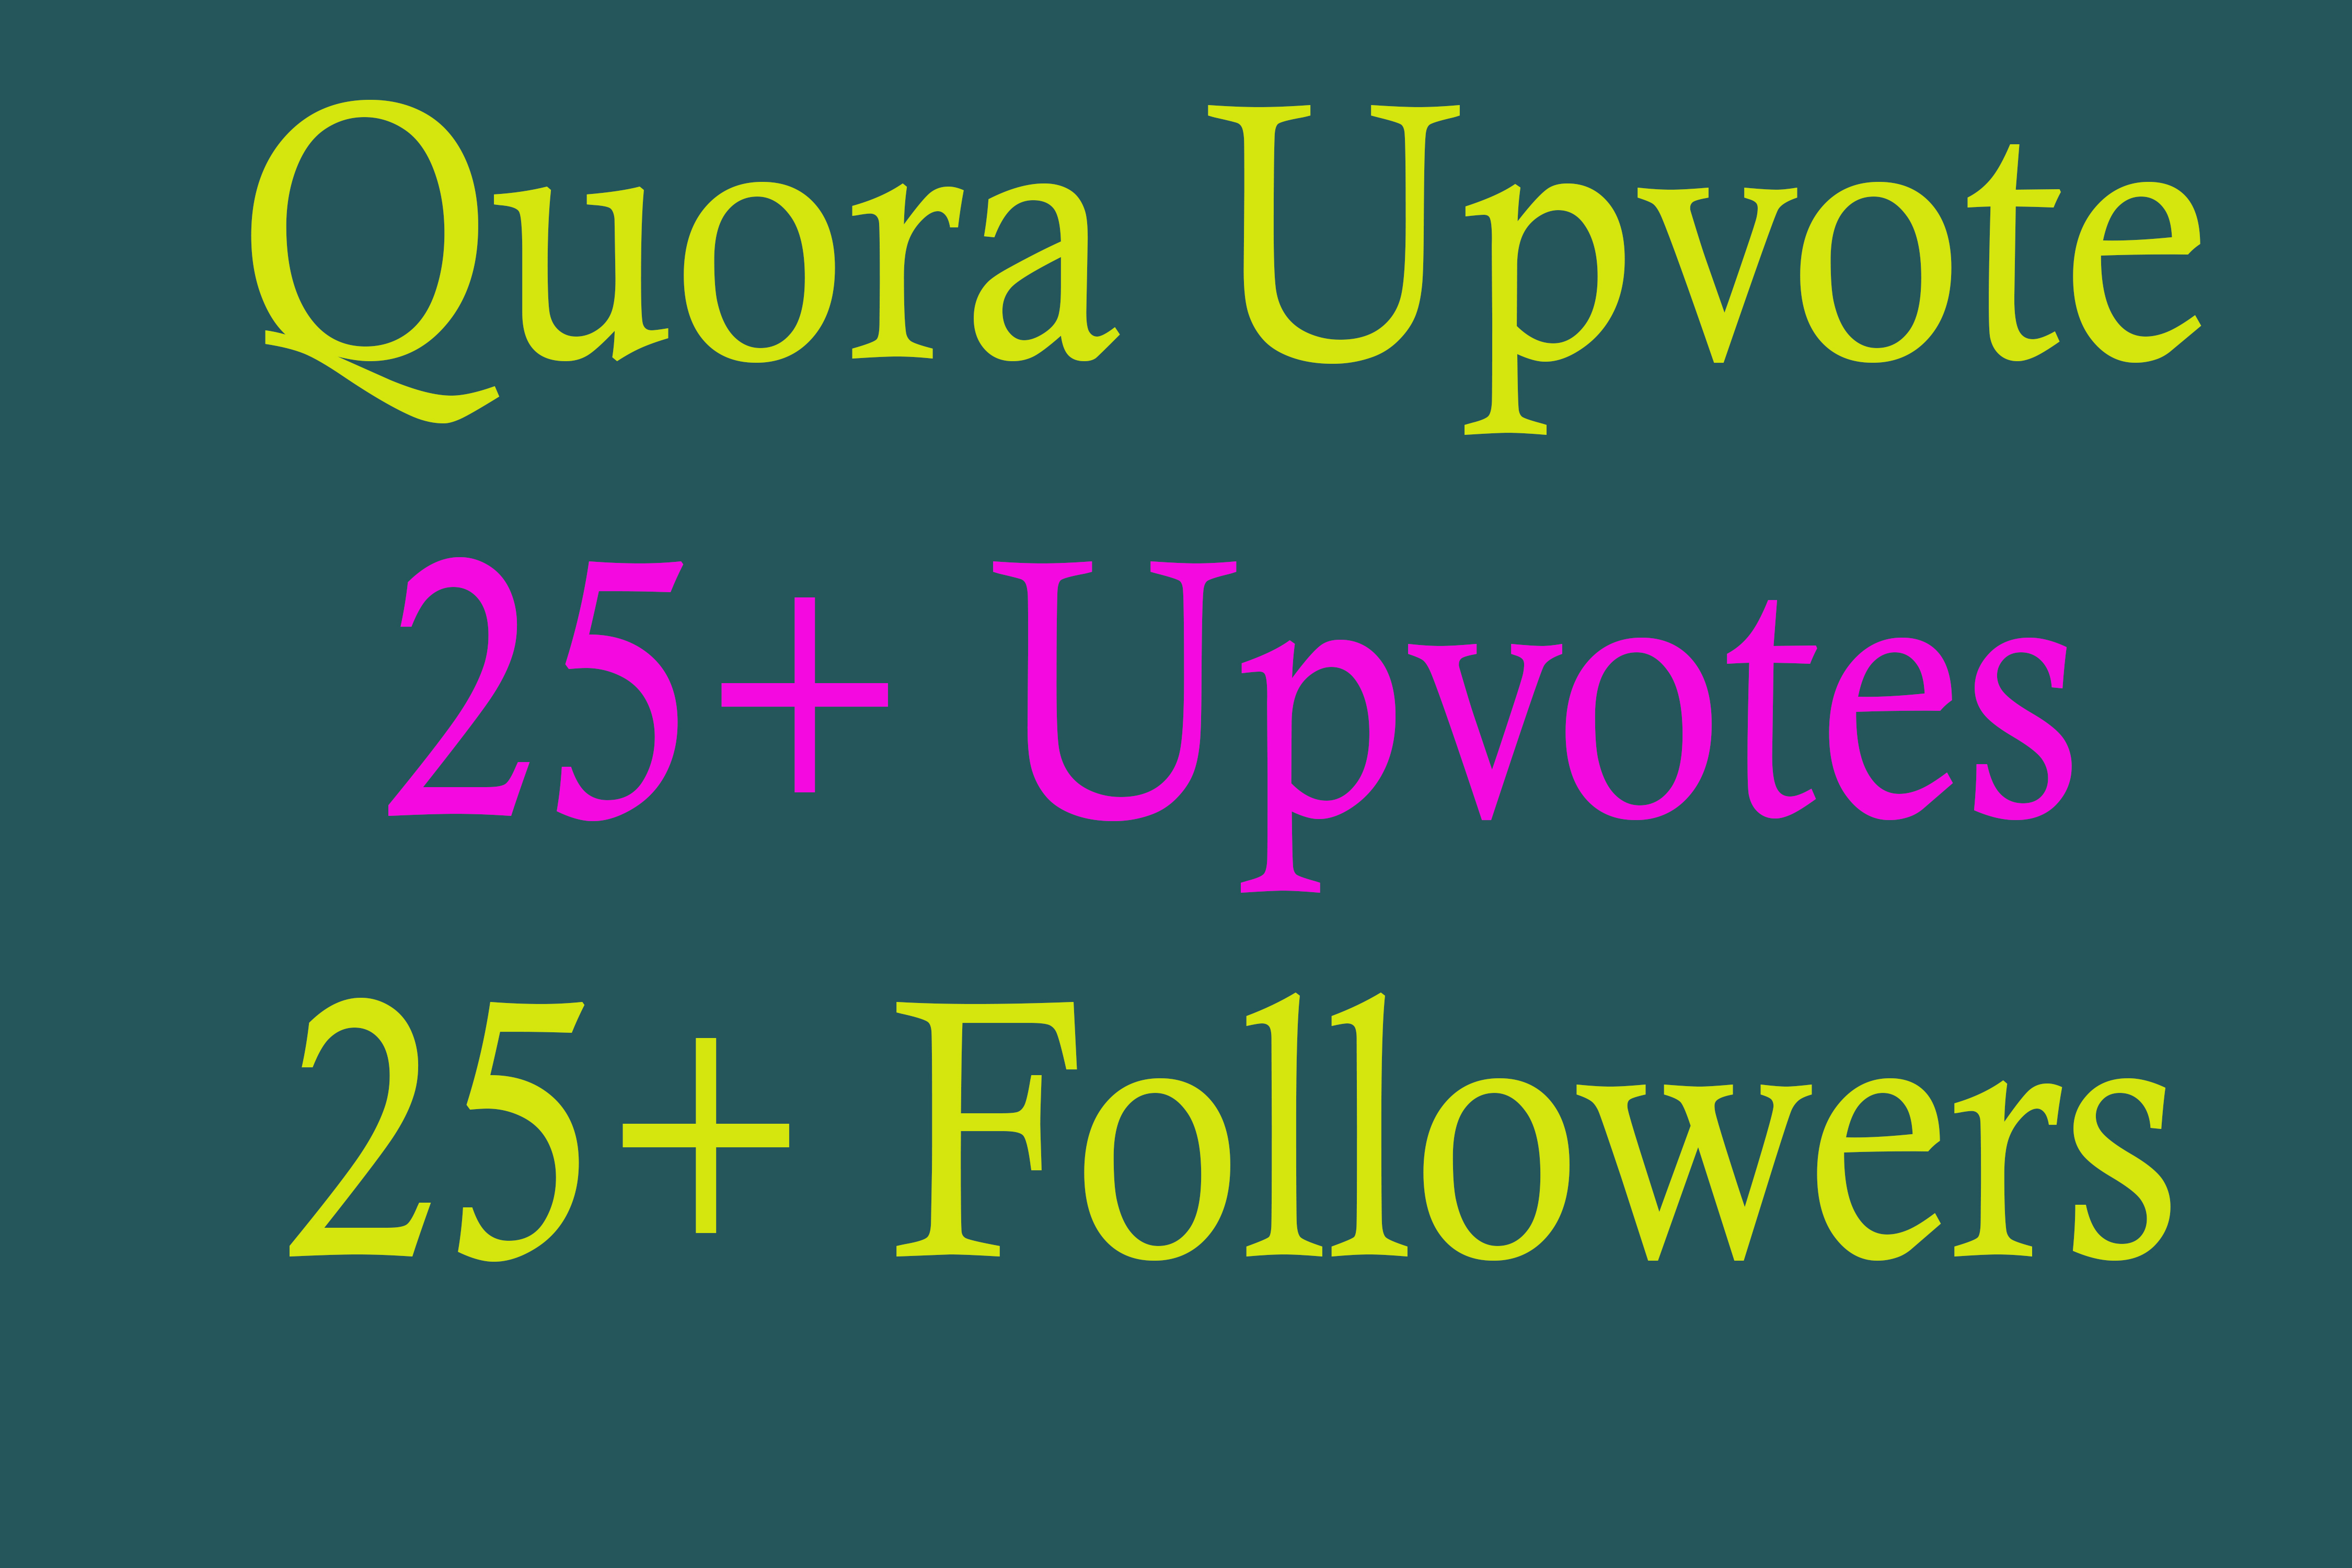 25+ Quora upvotes and follow for you